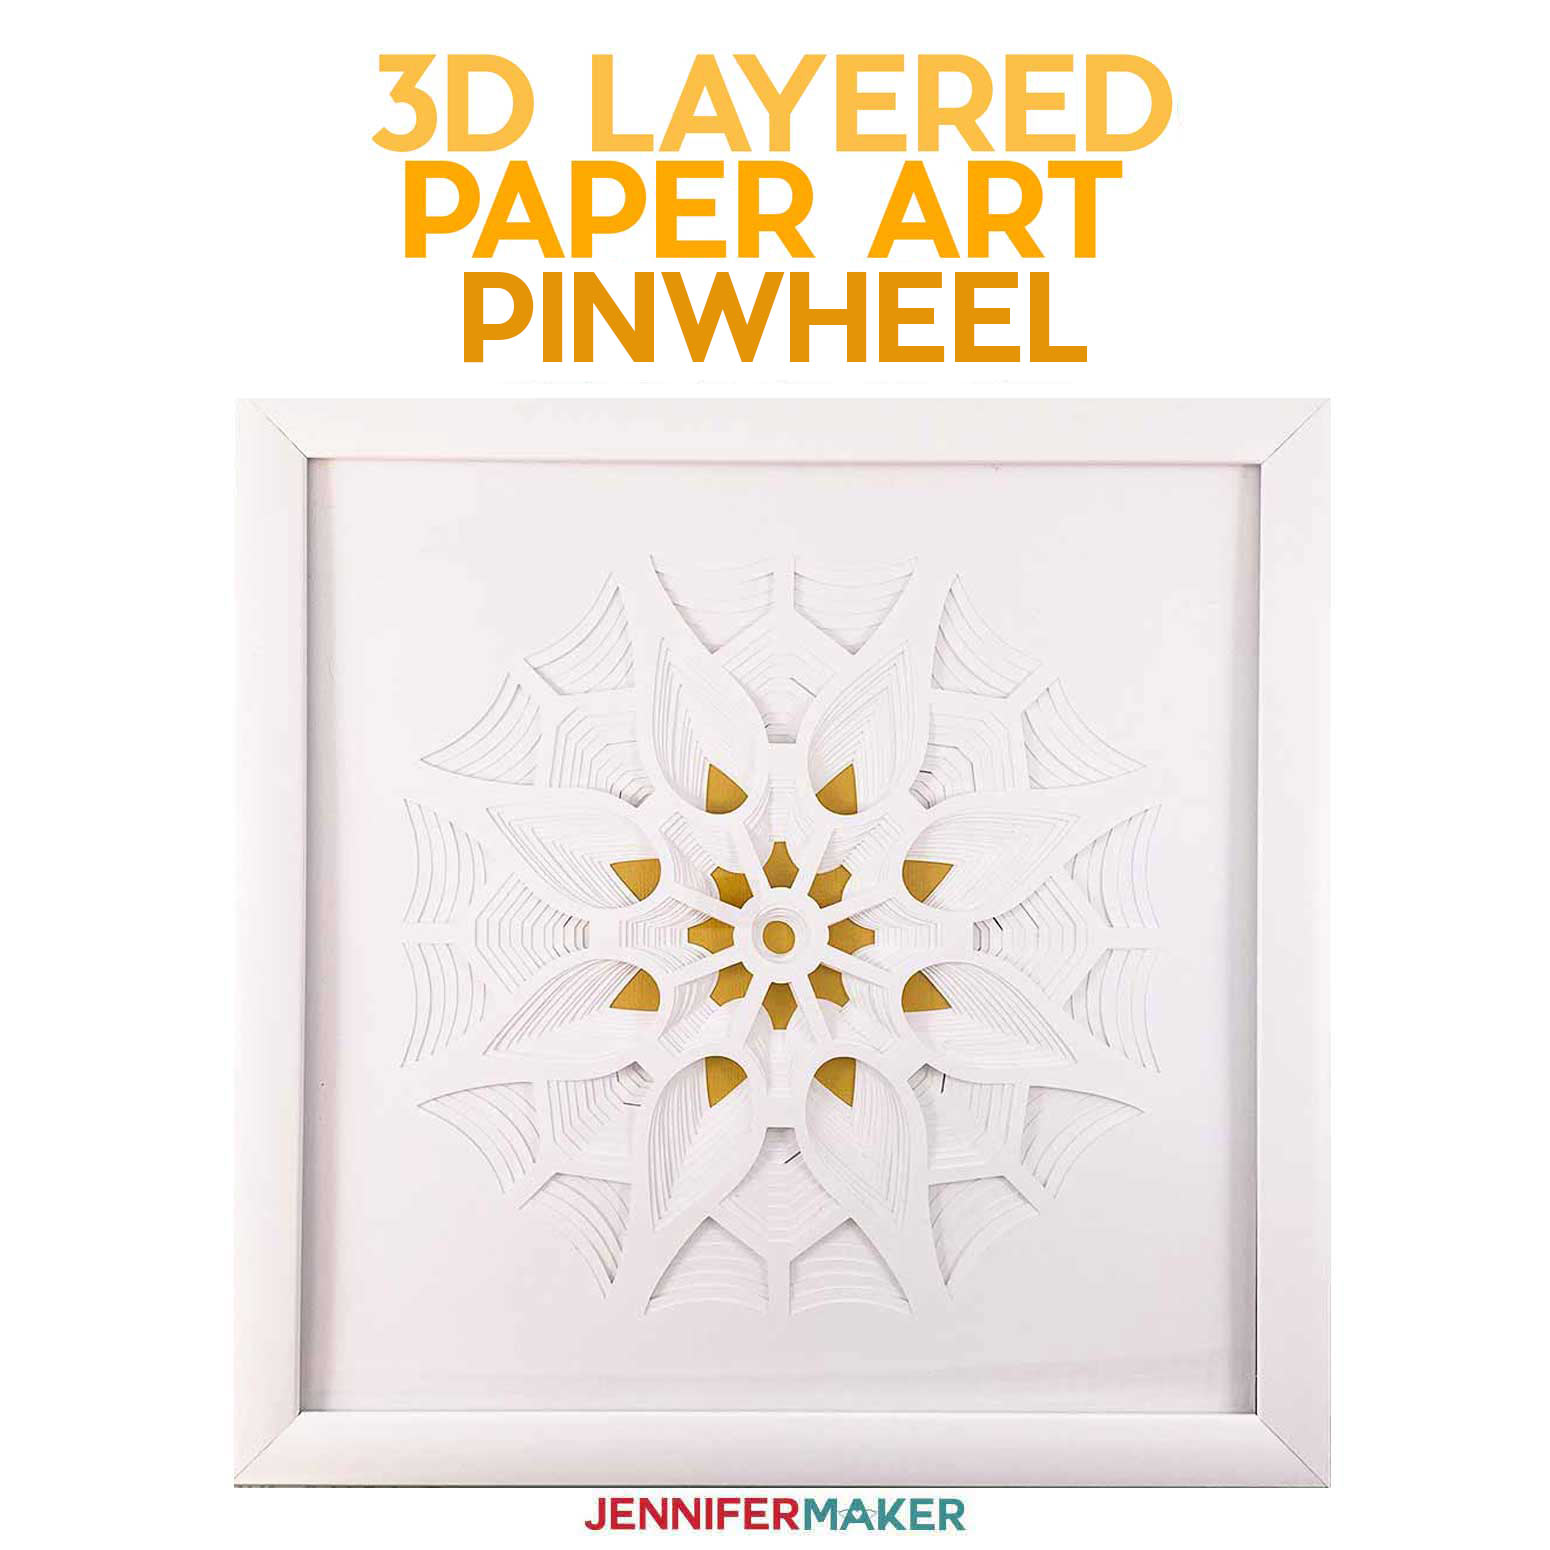 3D Layered Paper Art: The Pinwheel (Series 3 of 4)